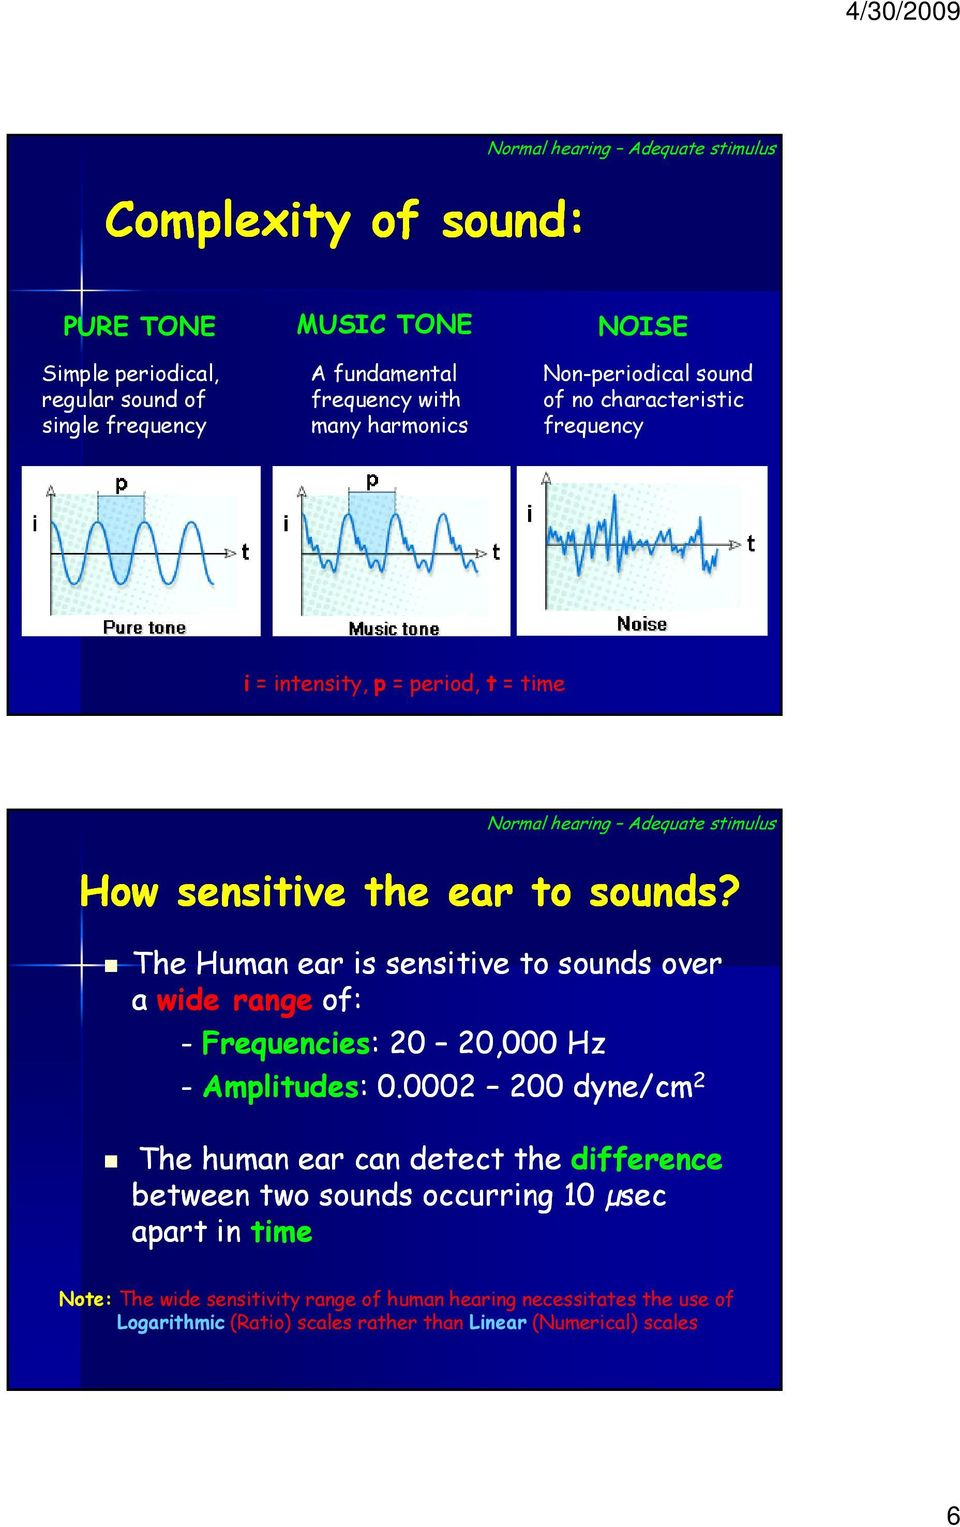 The Human ear is sensitive to sounds over a wide range of: - Frequencies: 20 20,000000 Hz - Amplitudes: 0.